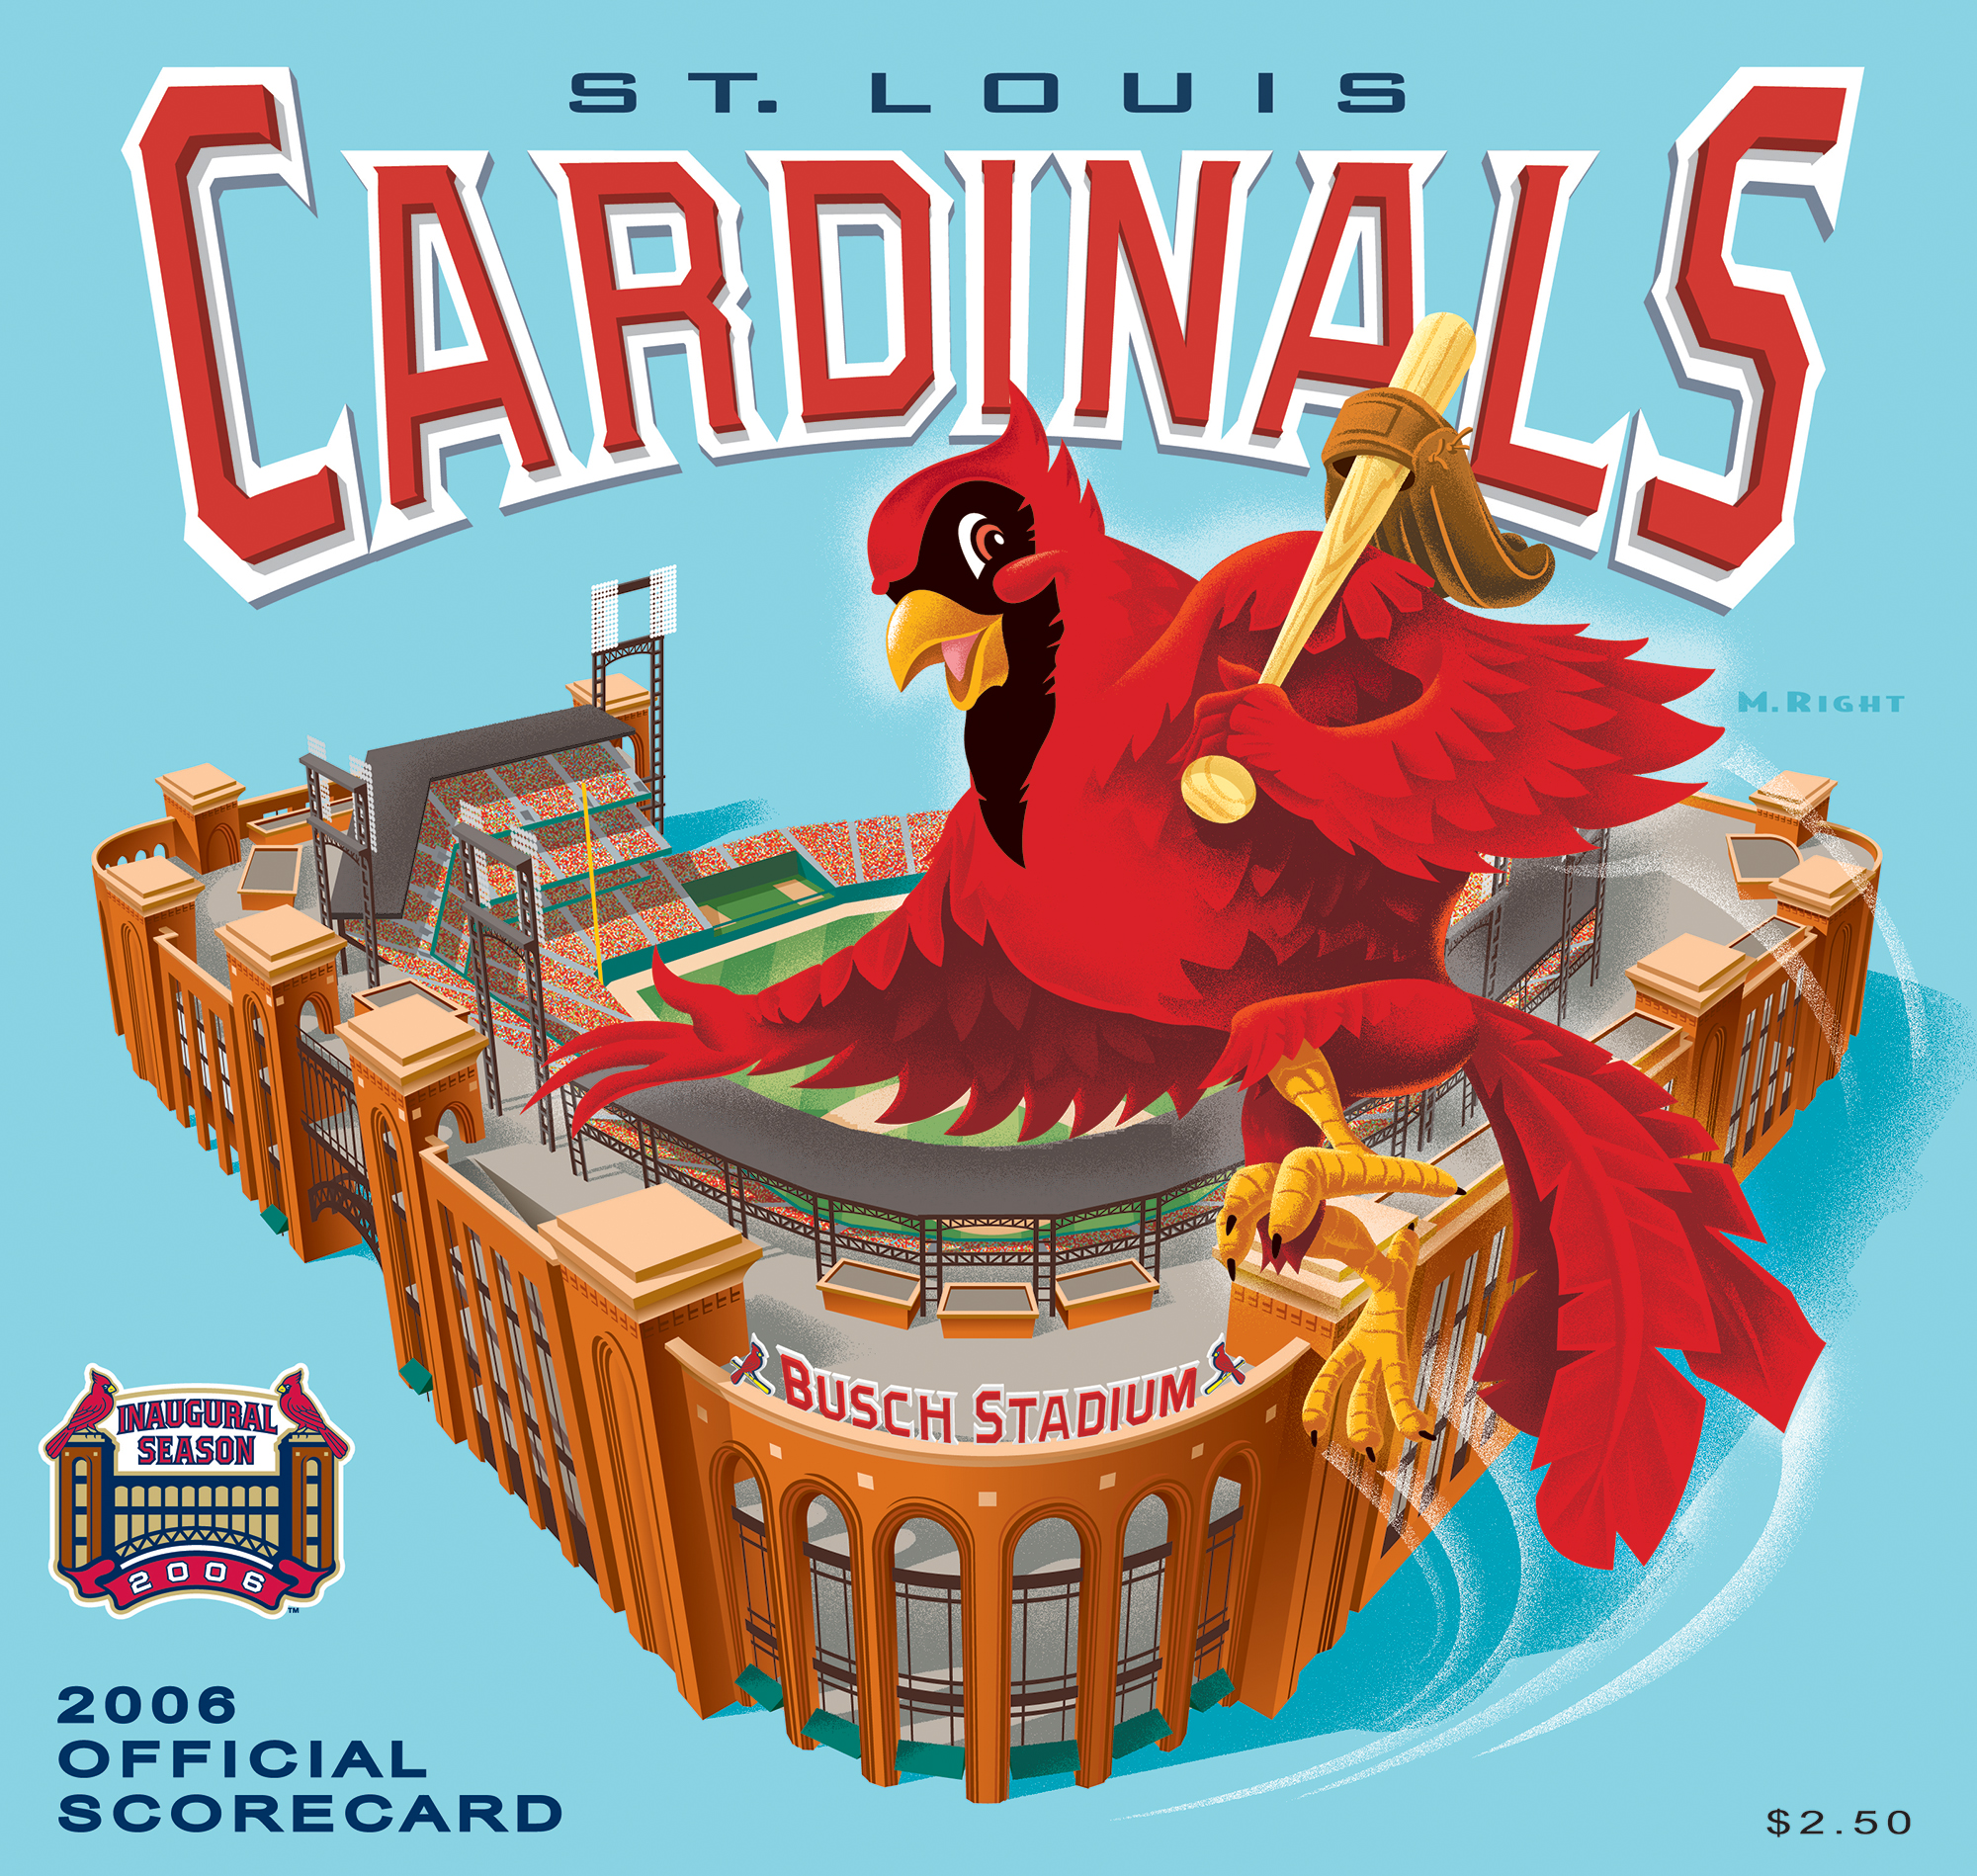 2006 Cardinals Official Scorecard